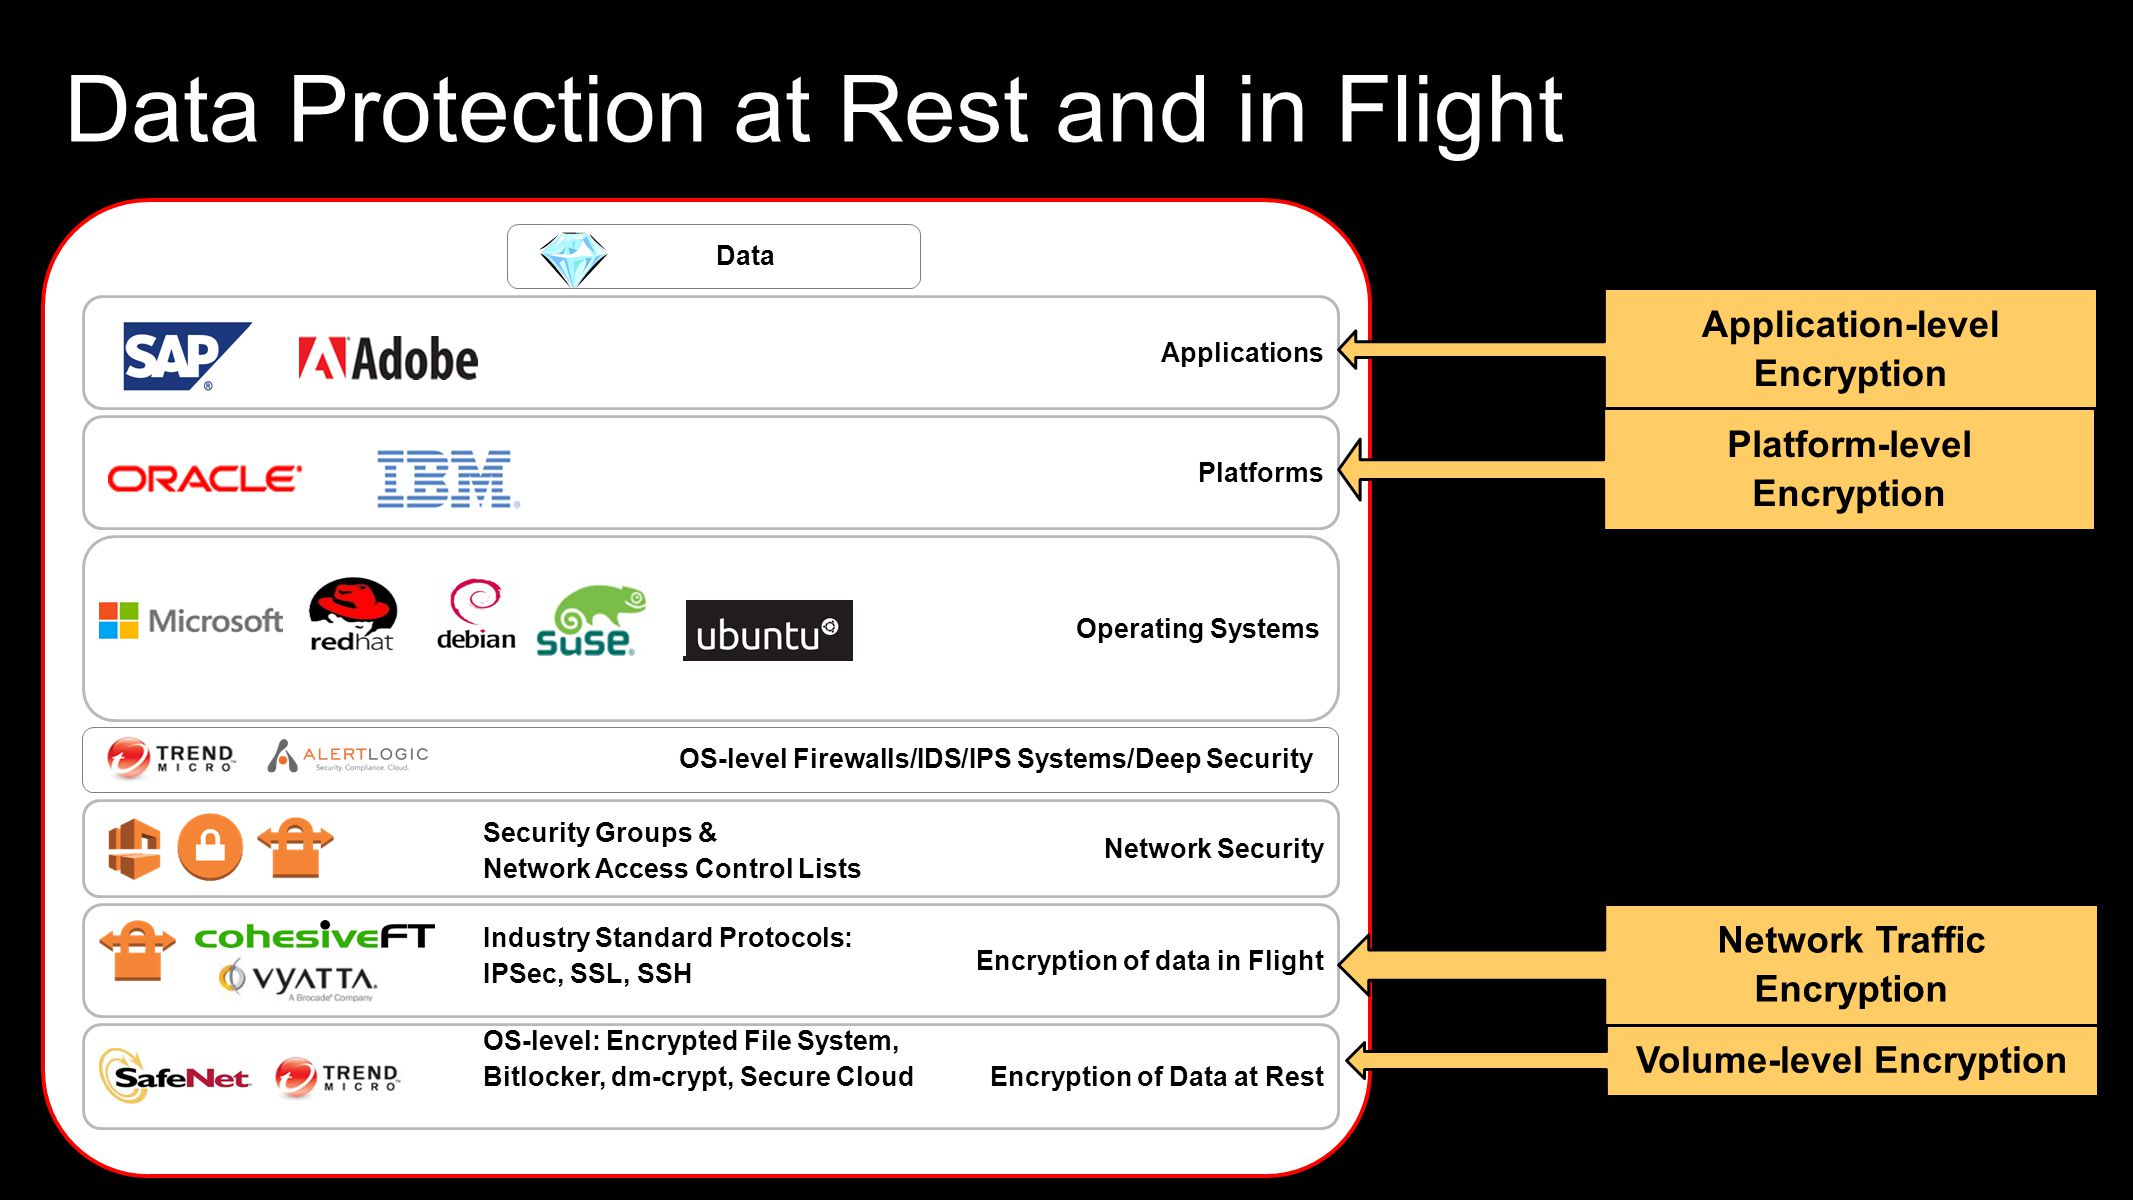 Data Protection at Rest and in Flight